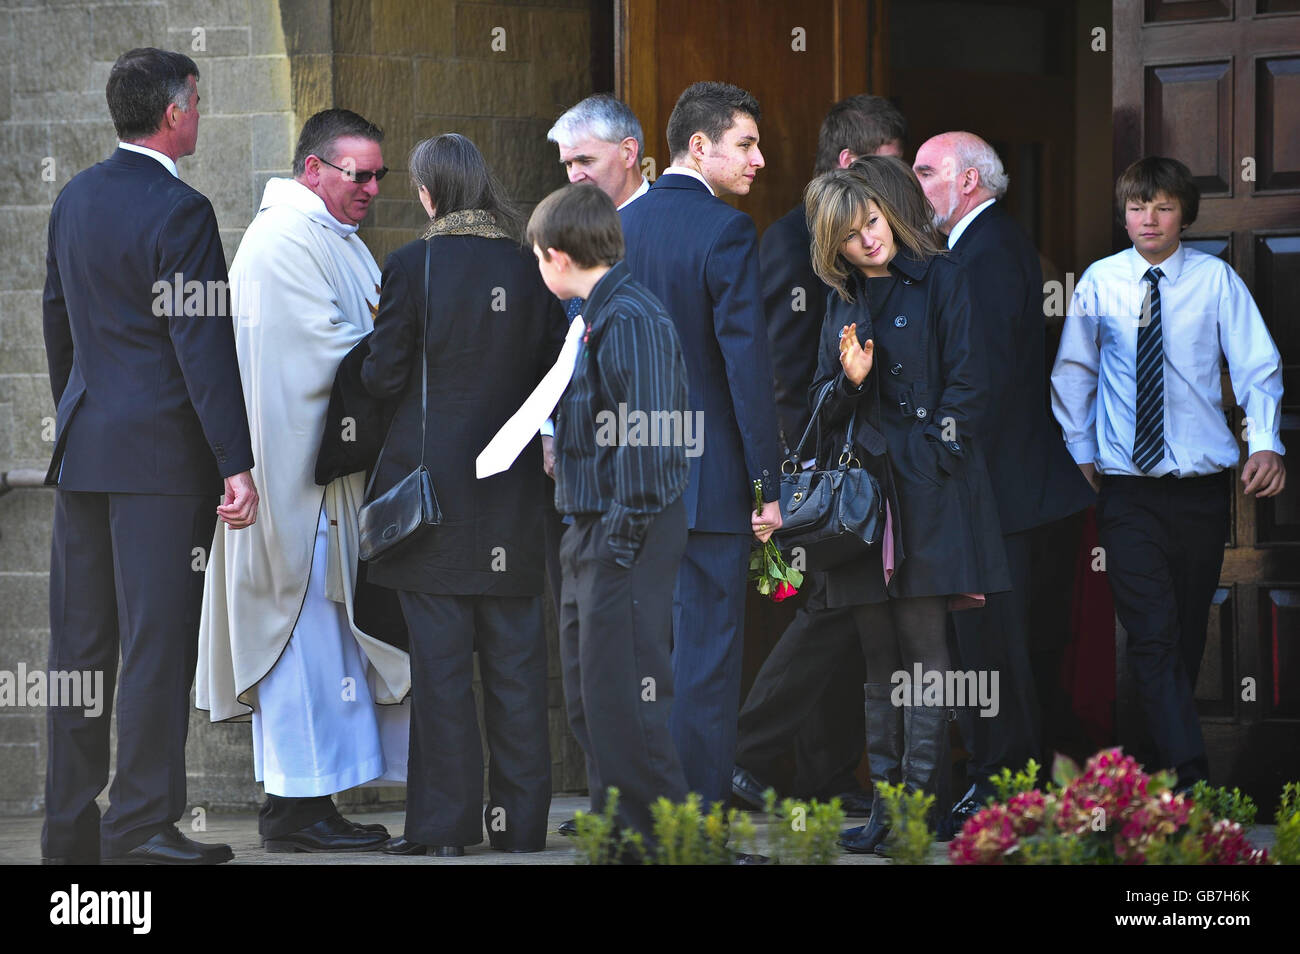 Funeral of air crash victims - Stock Image